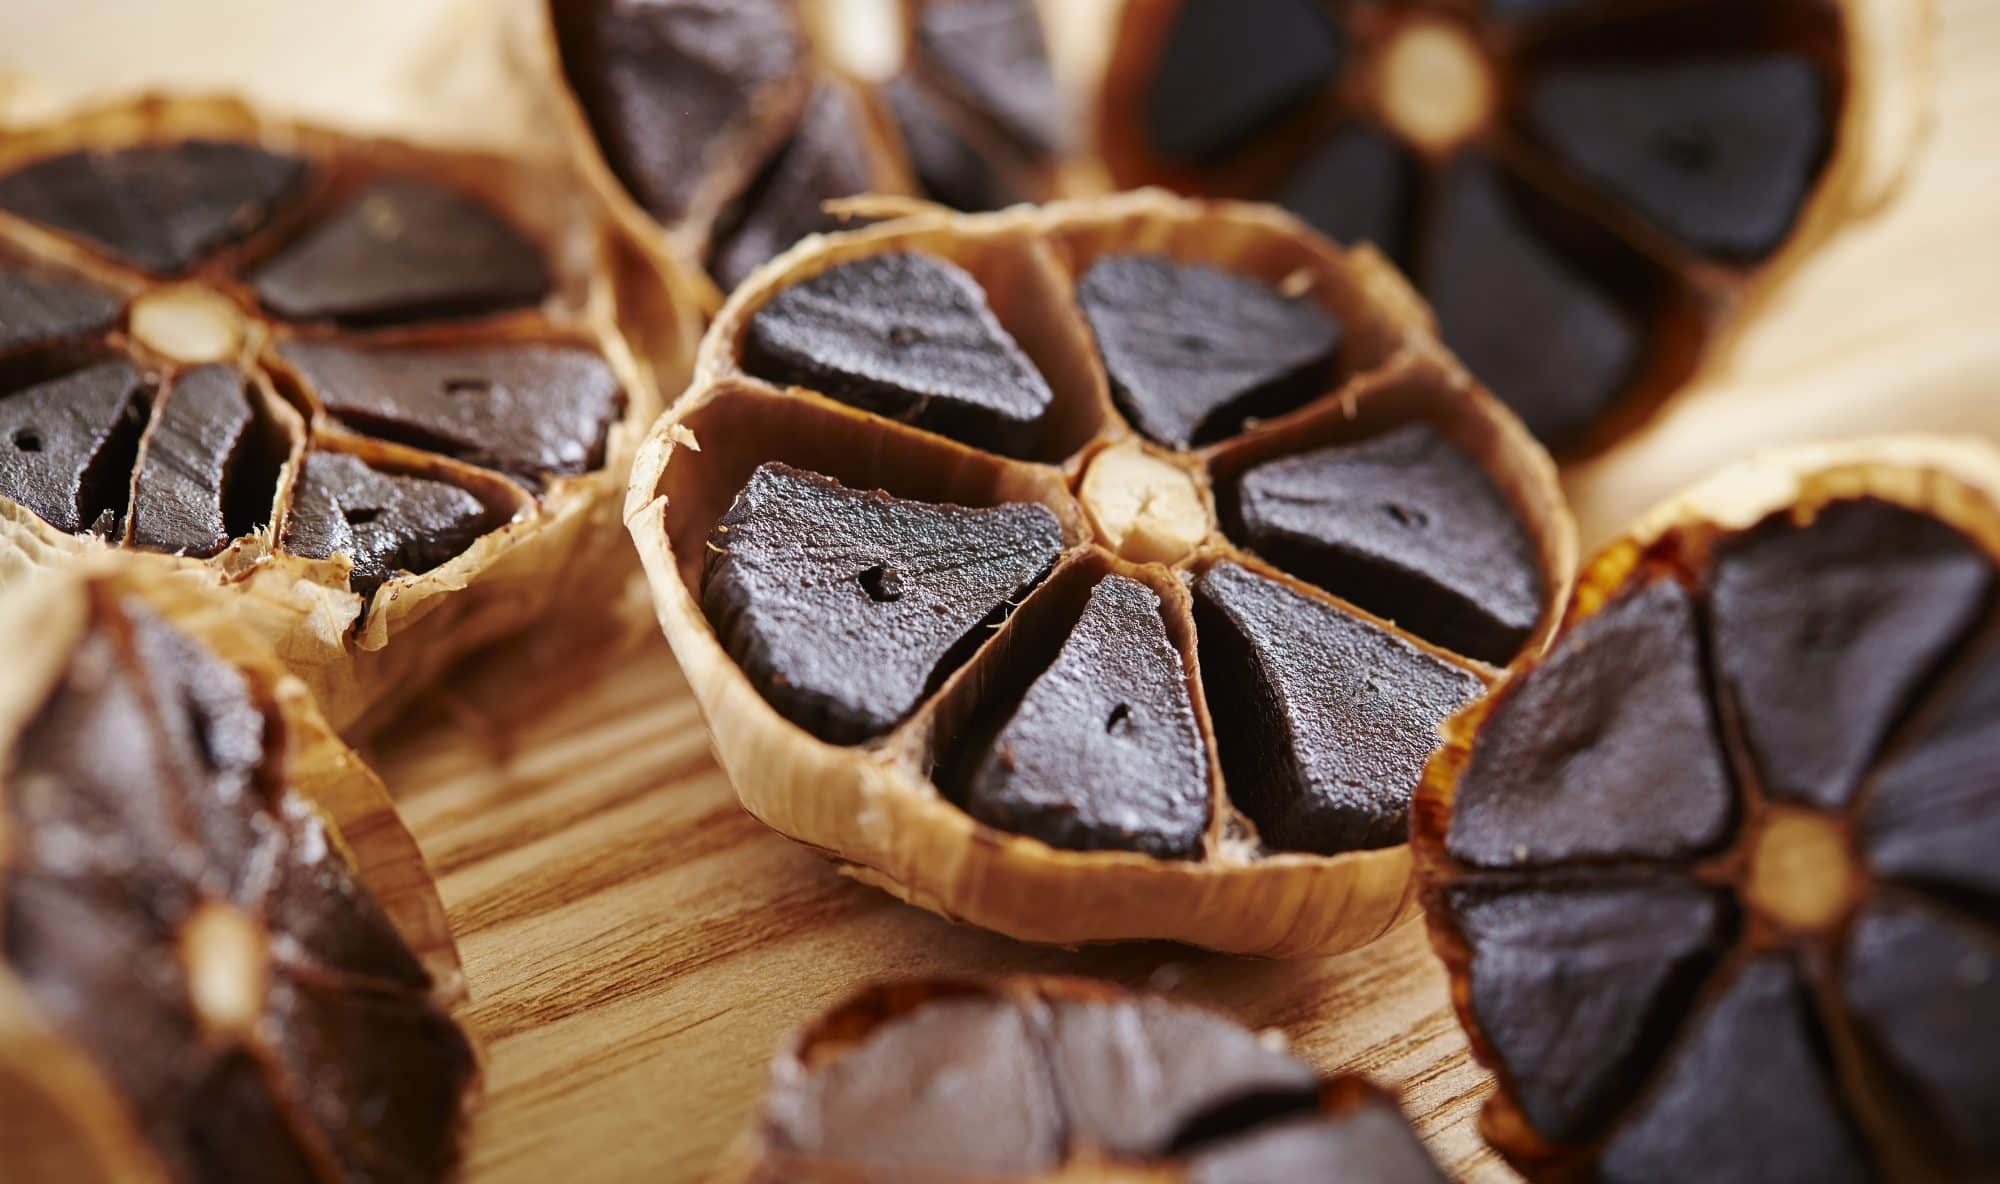 Black garlic fermented foods